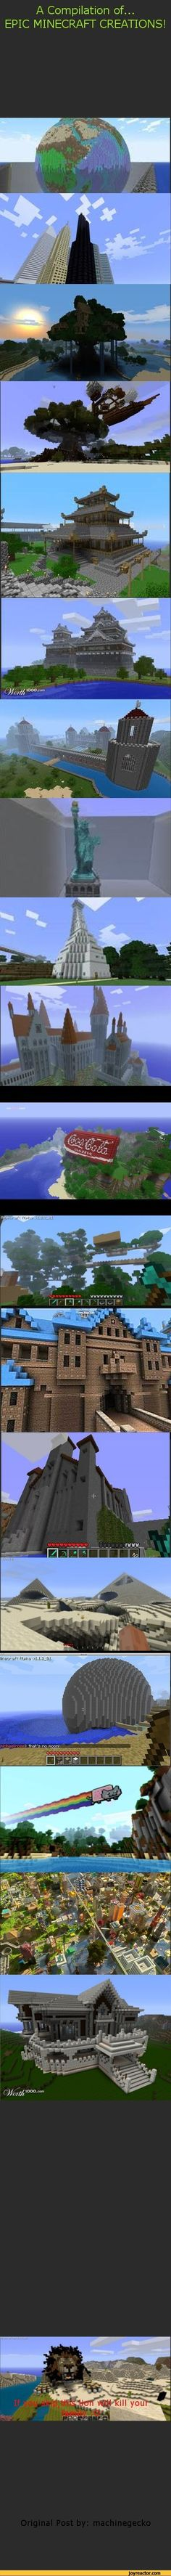 A Compilation of...EPIC MINECRAFT CREATIONS!Original Post by: machinegecko / funny pictures / funny pictures best jokes: comics, images, video, humor, gif animation - i lold - make cool stuff like this in minecraft